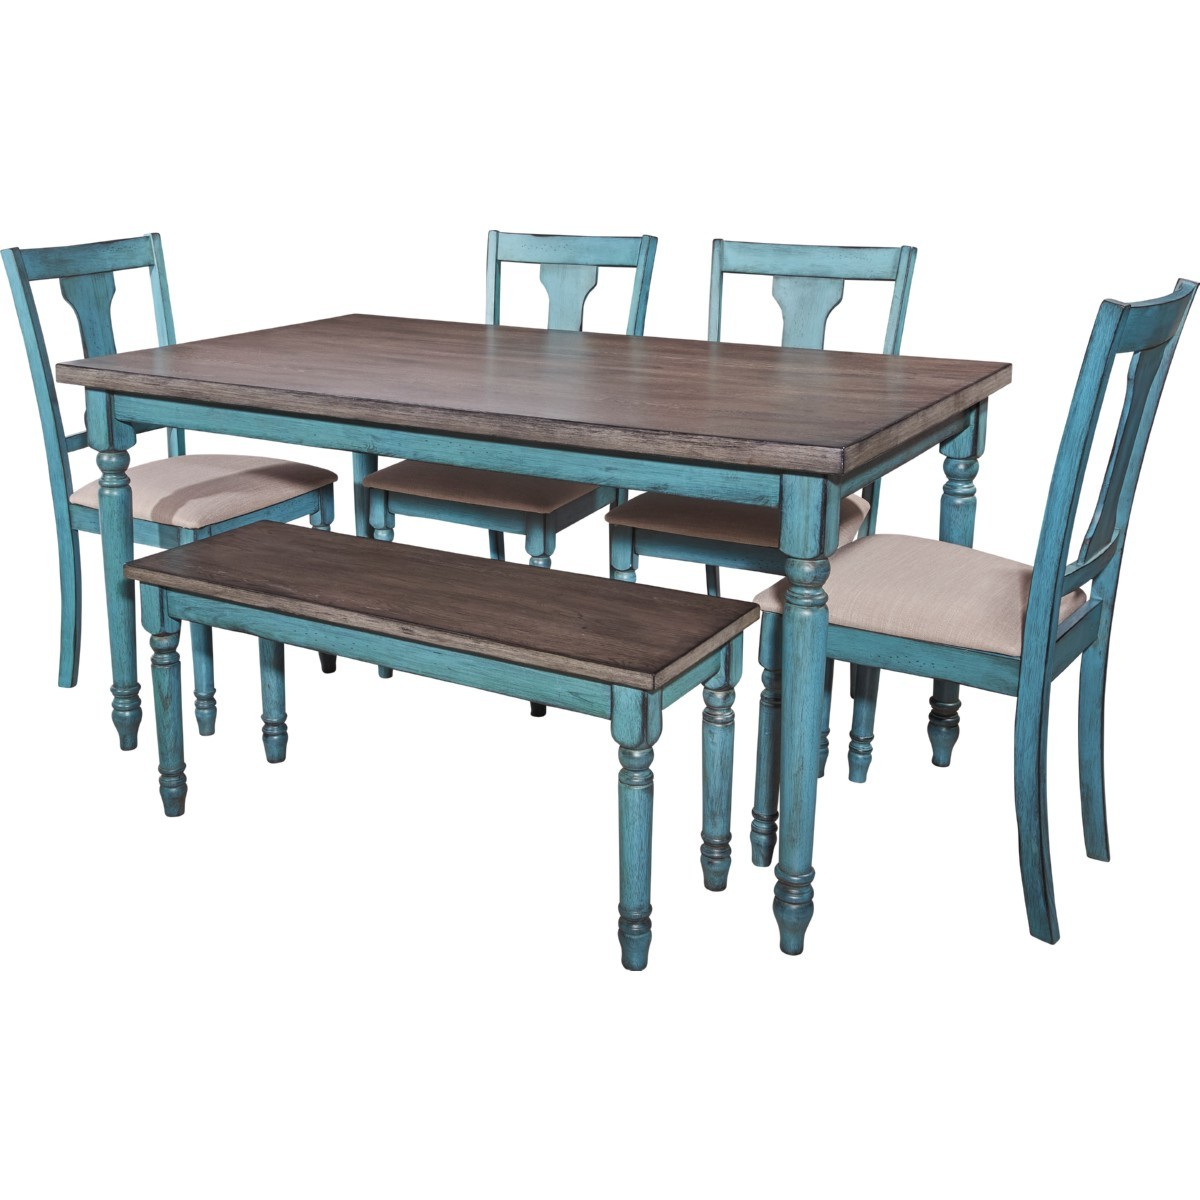 Powell 16D8214 on Powell Furniture Dining Sets